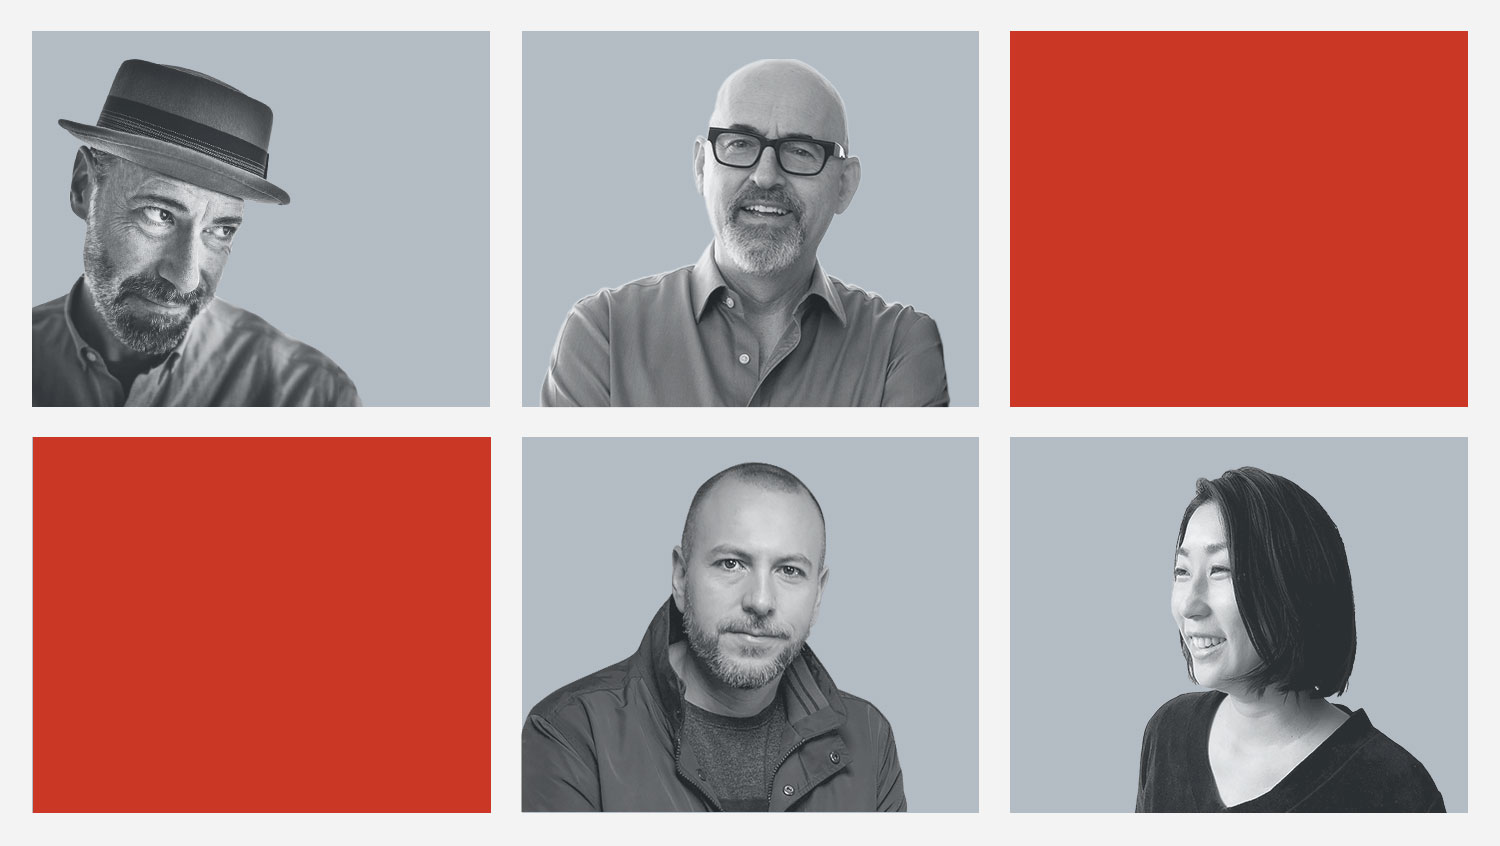 Works Design's 2020 Sustainability Reporting Trends team of designers: Don Laurie (top left), Kevin Ward (top right), Nelson Silva (bottom left) and Chie Momota (bottom right)